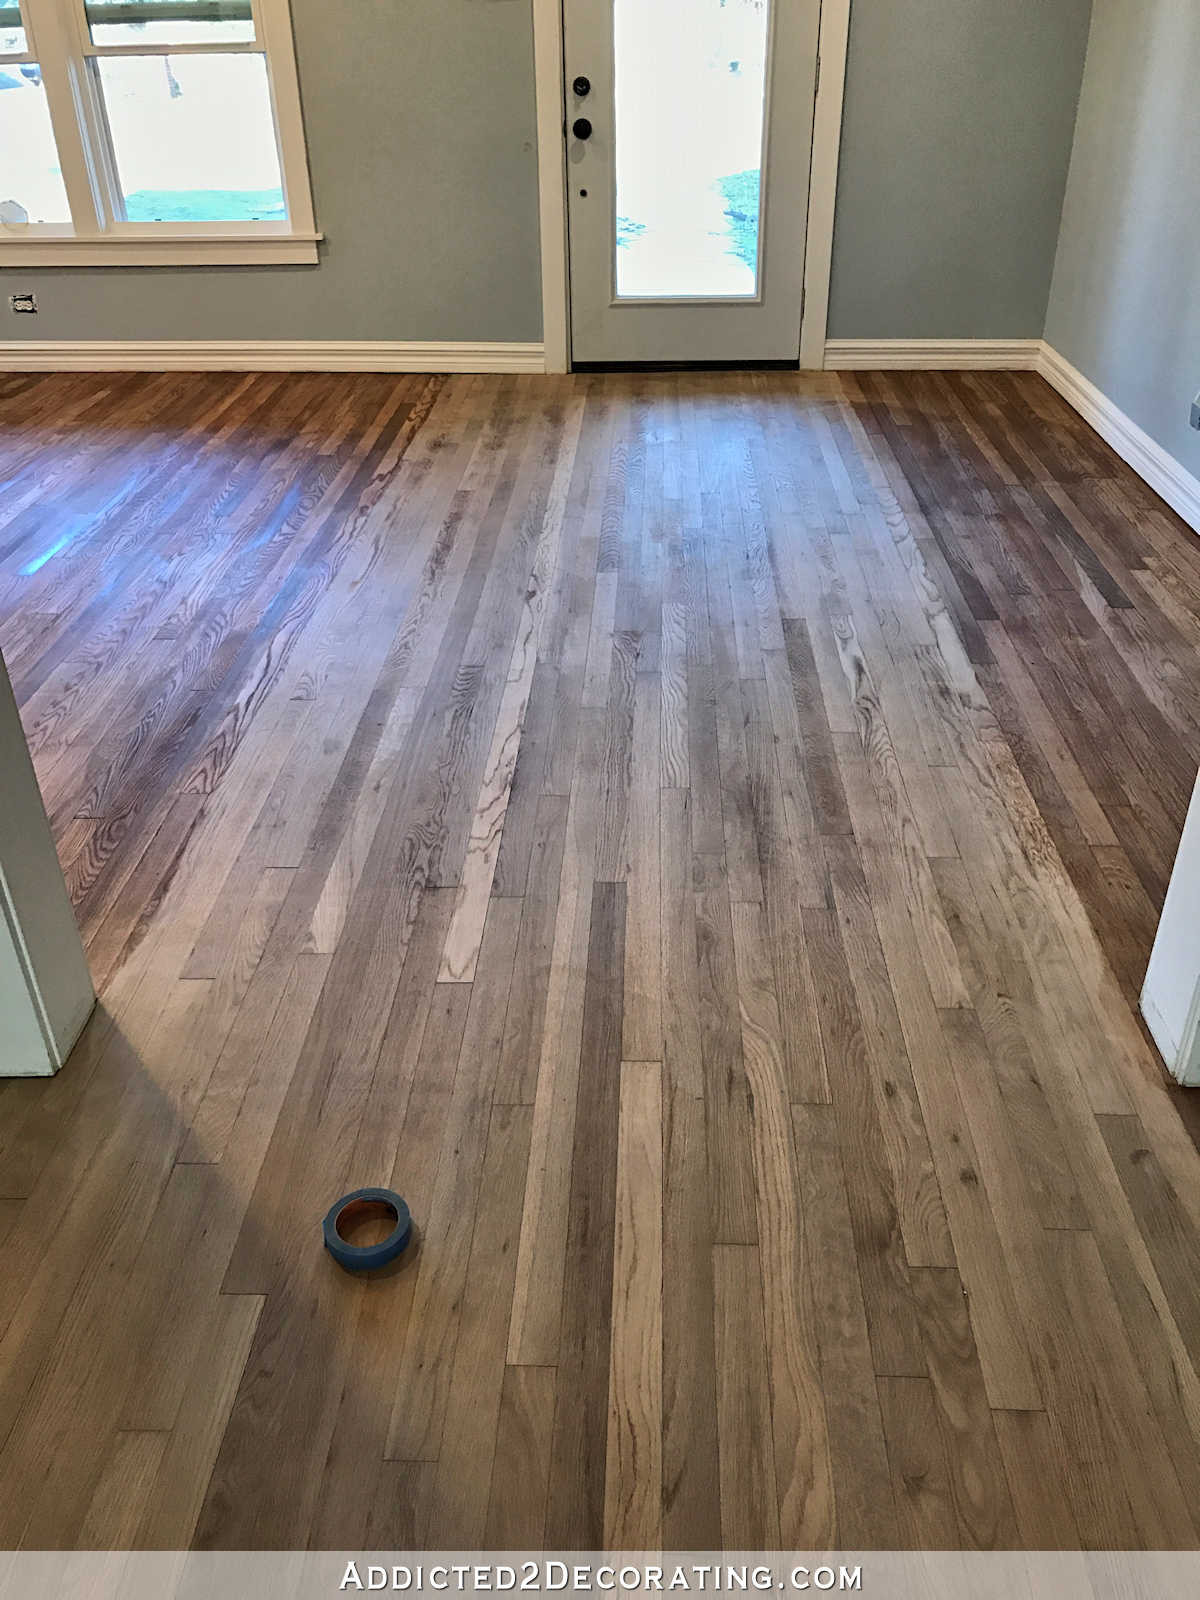 hardwood flooring reno depot of adventures in staining my red oak hardwood floors products process inside staining red oak hardwood floors 4 entryway and living room wood conditioner